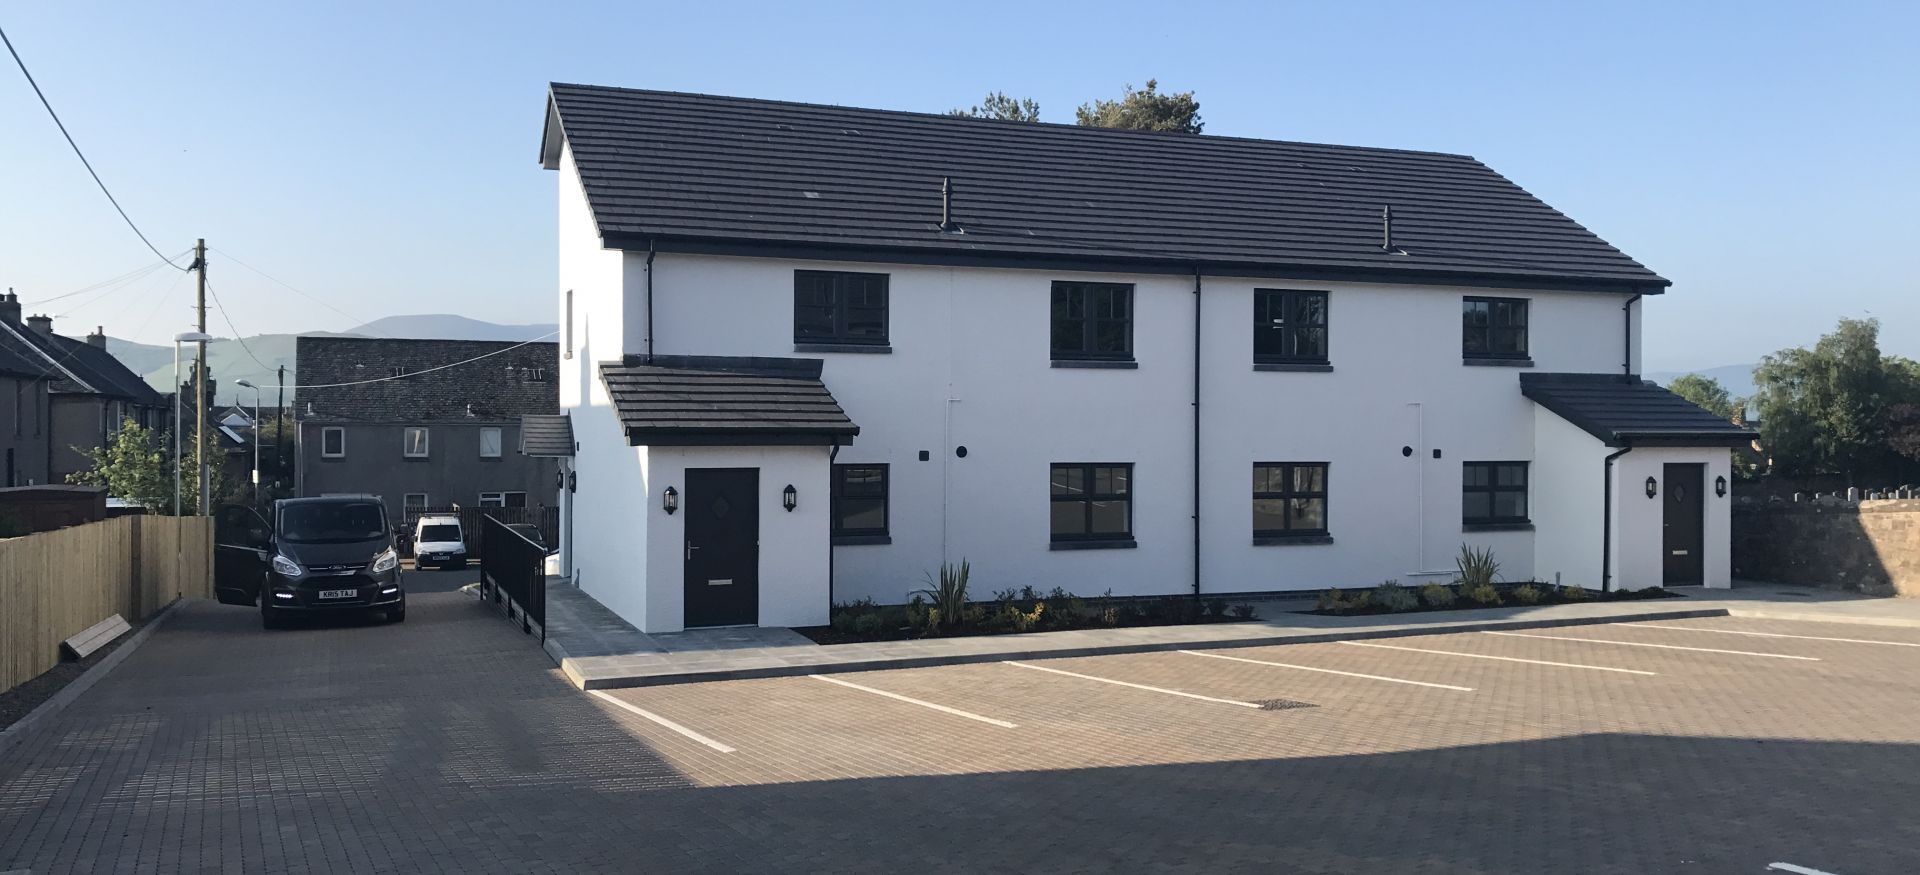 Two blocks of four two-bedroomed flats